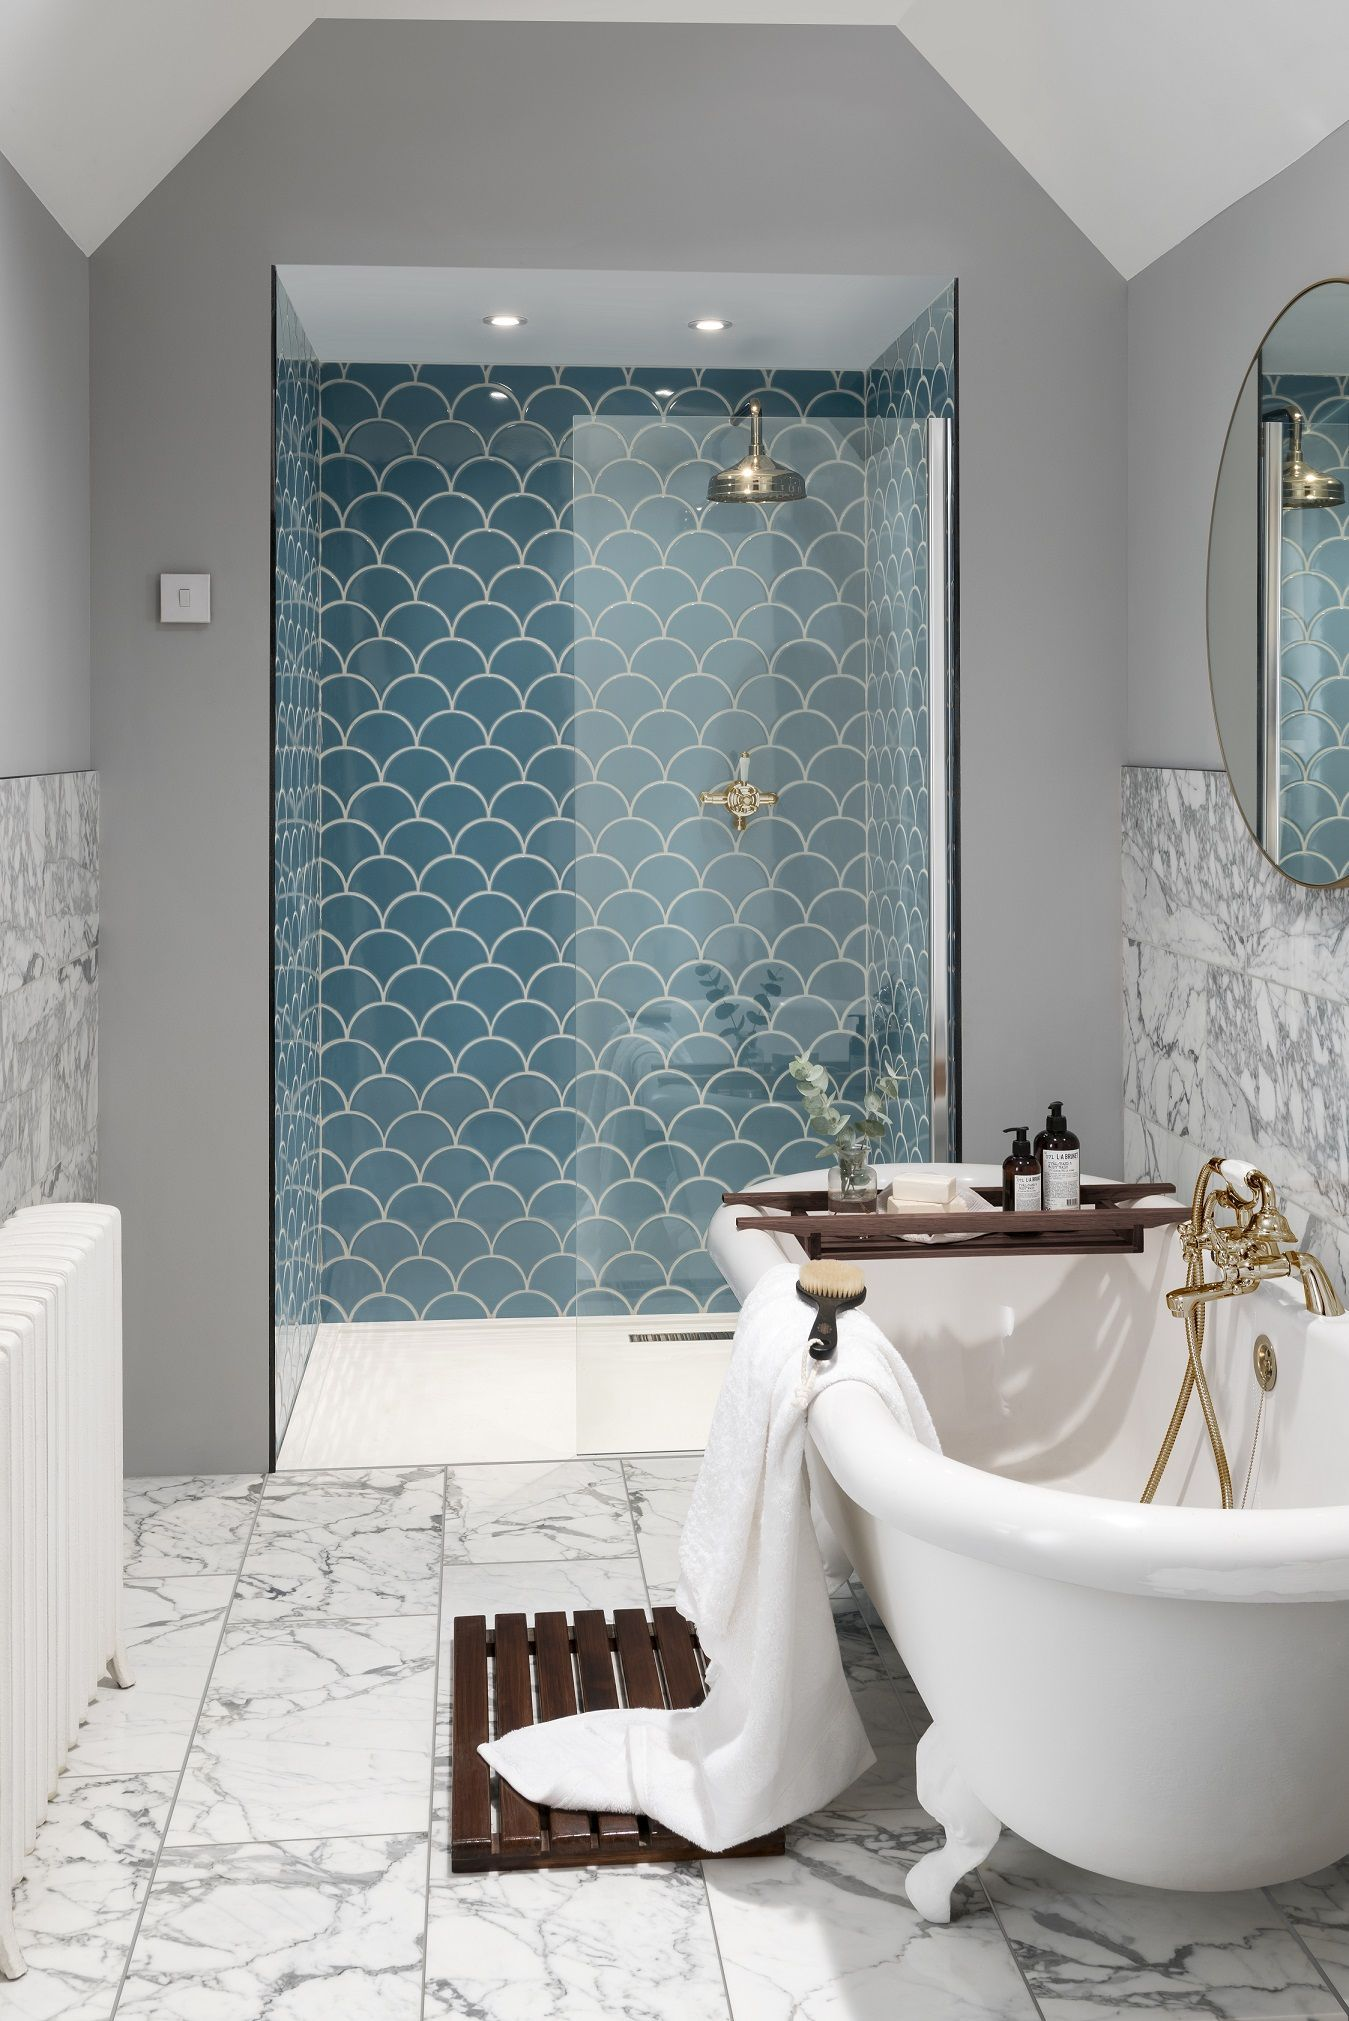 scallop tiles bathroom - Go for beautifully unique bathroom final